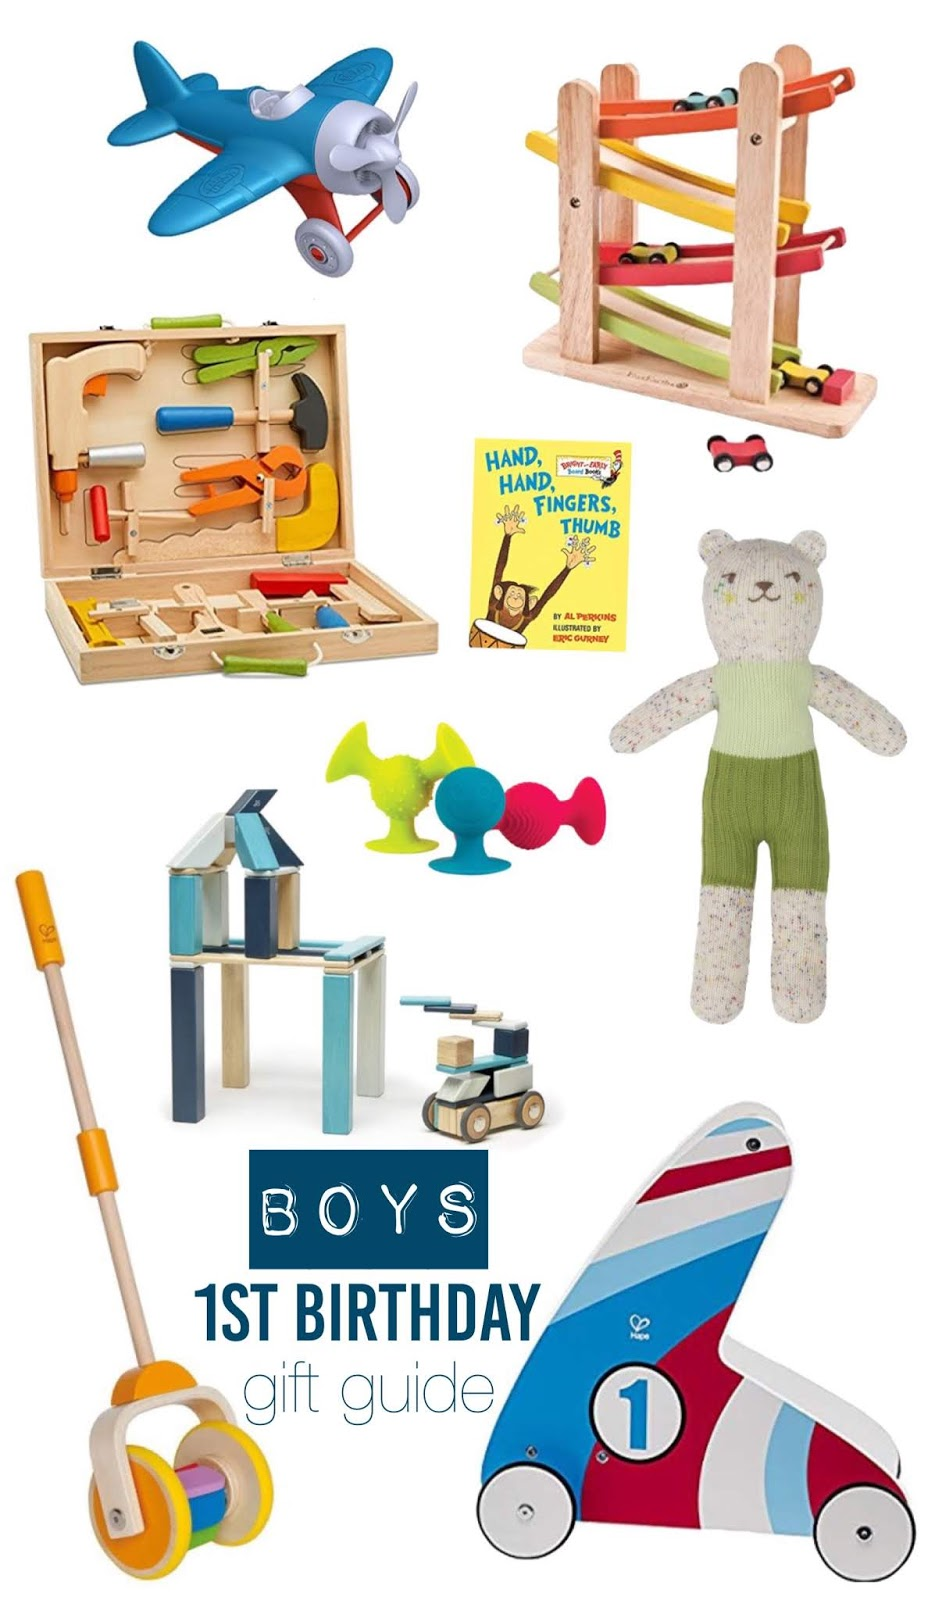 First Birthday Gift Guide For Boys  sc 1 st  OrangeMemories.net : first birthday gift ideas for boys - medton.org